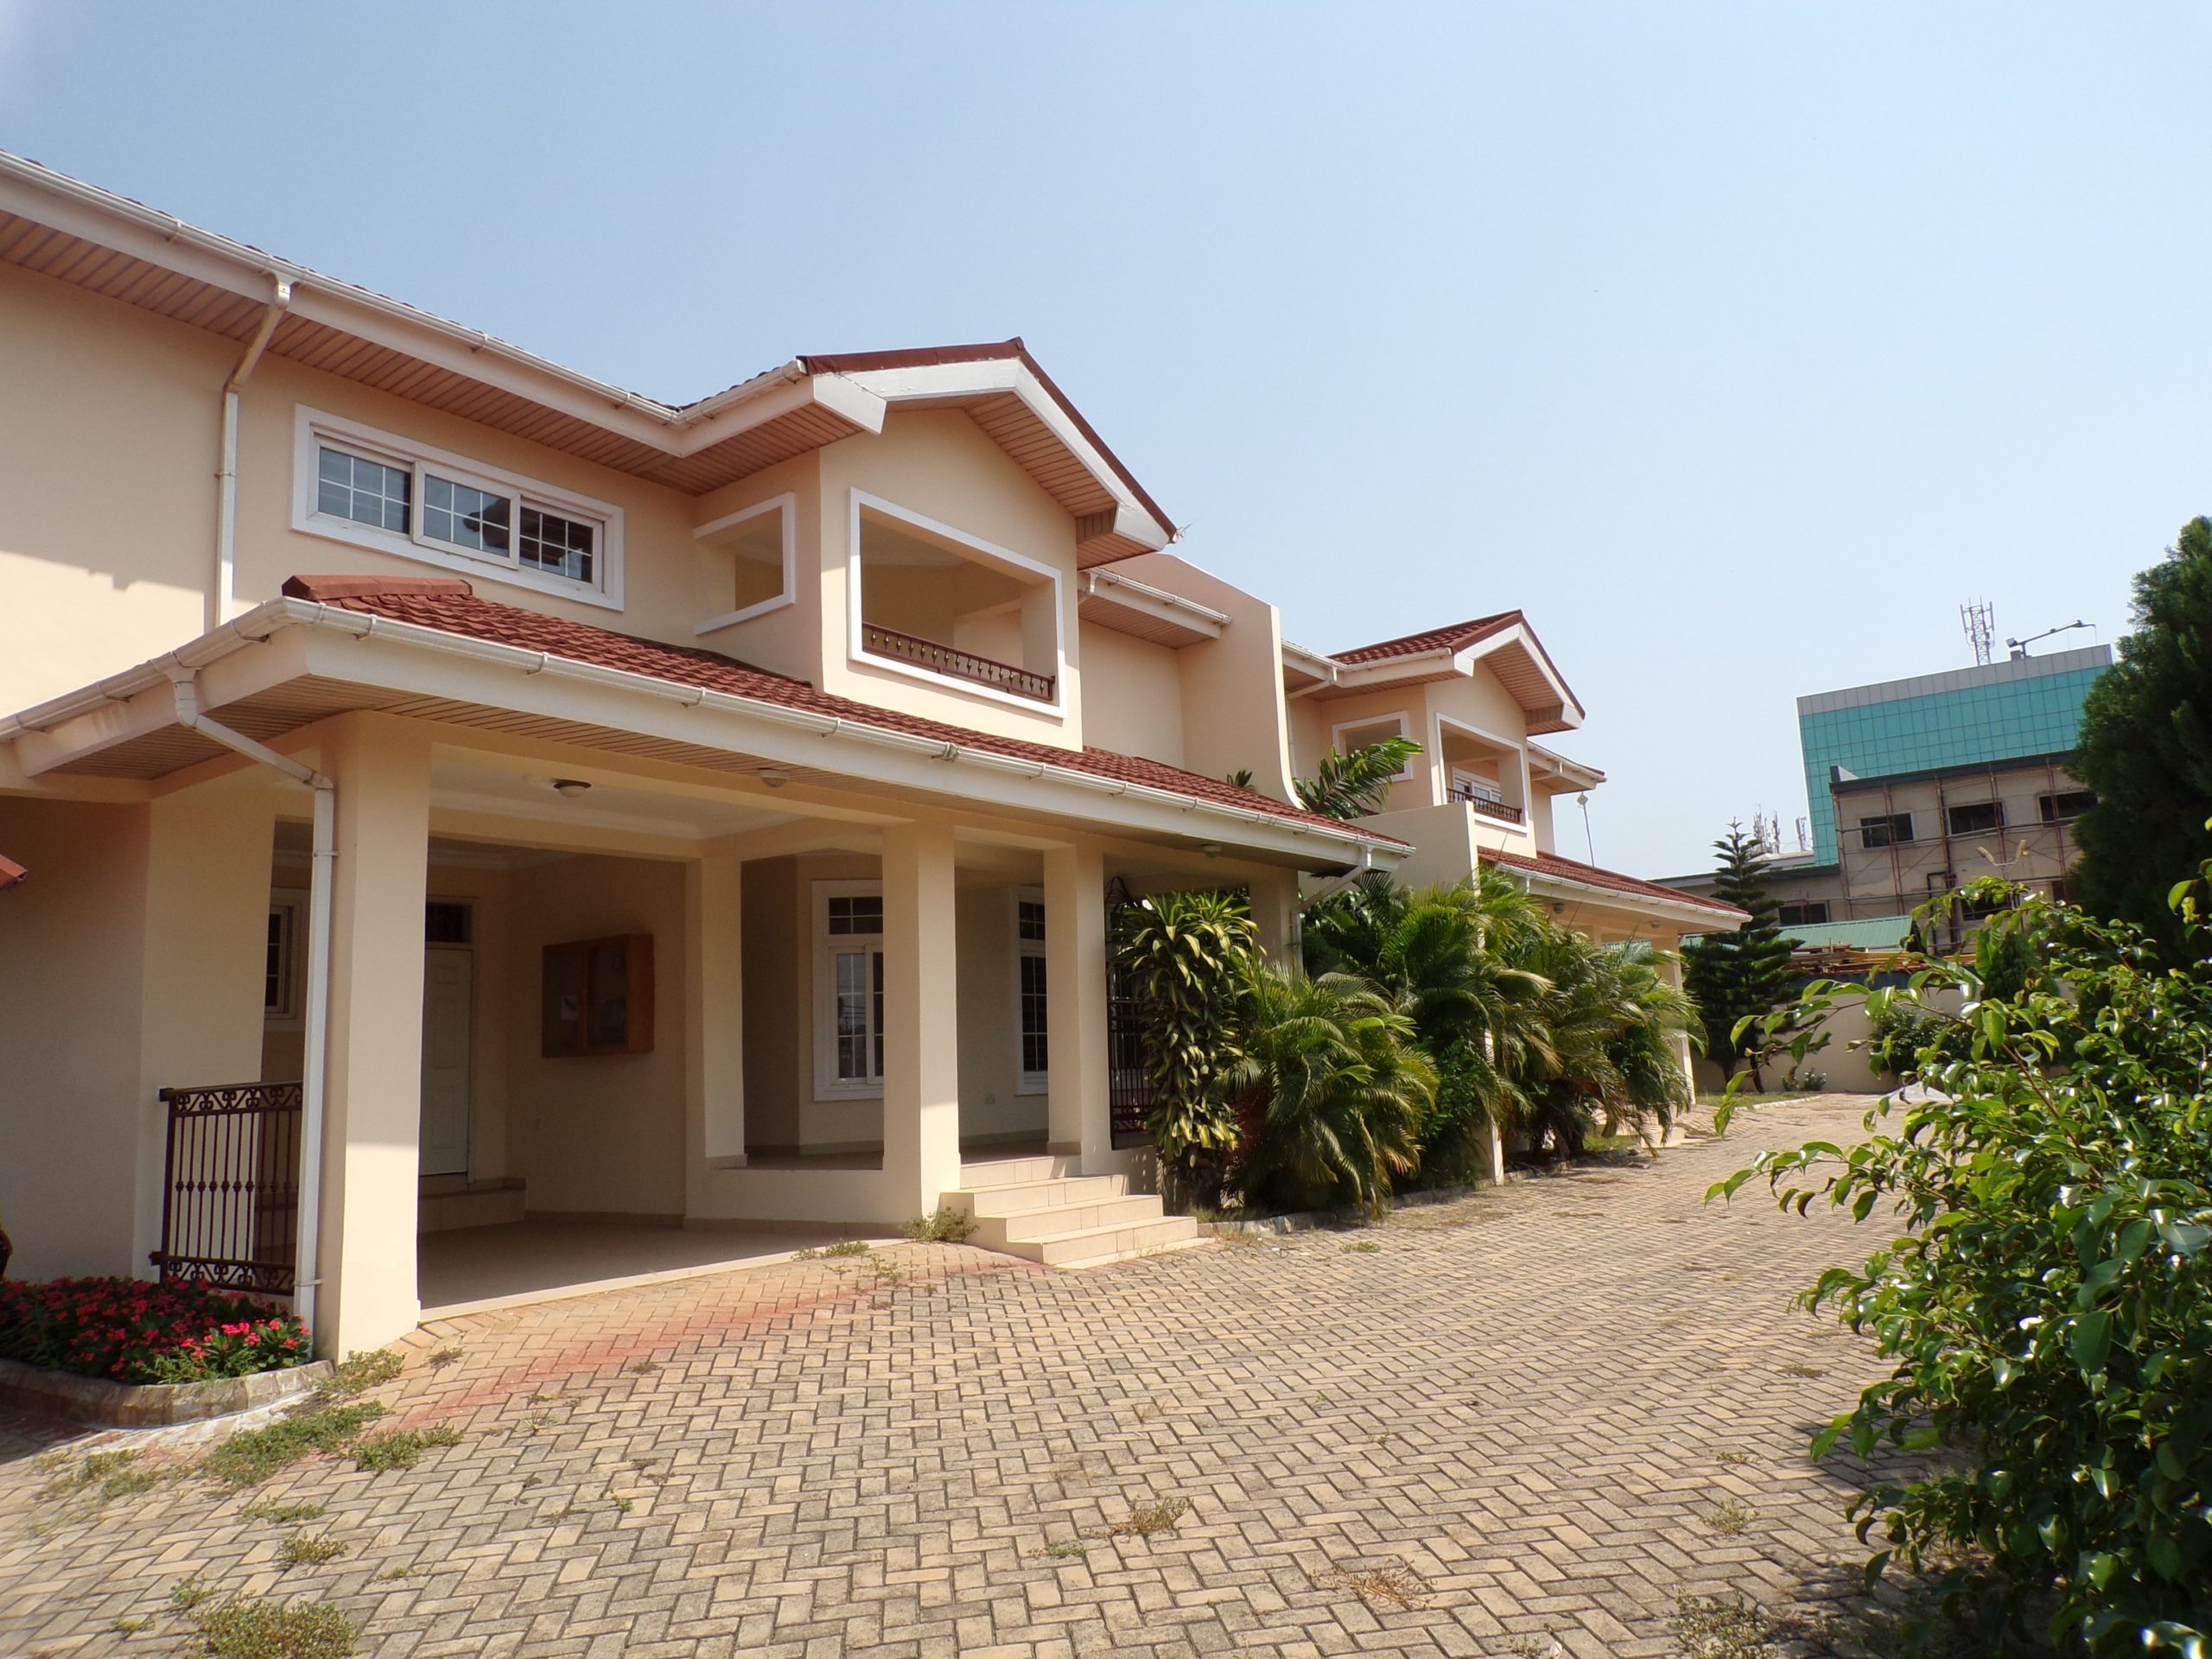 3 BEDROOM UNFURNISHED HOUSE FOR RENT AT RIDGE